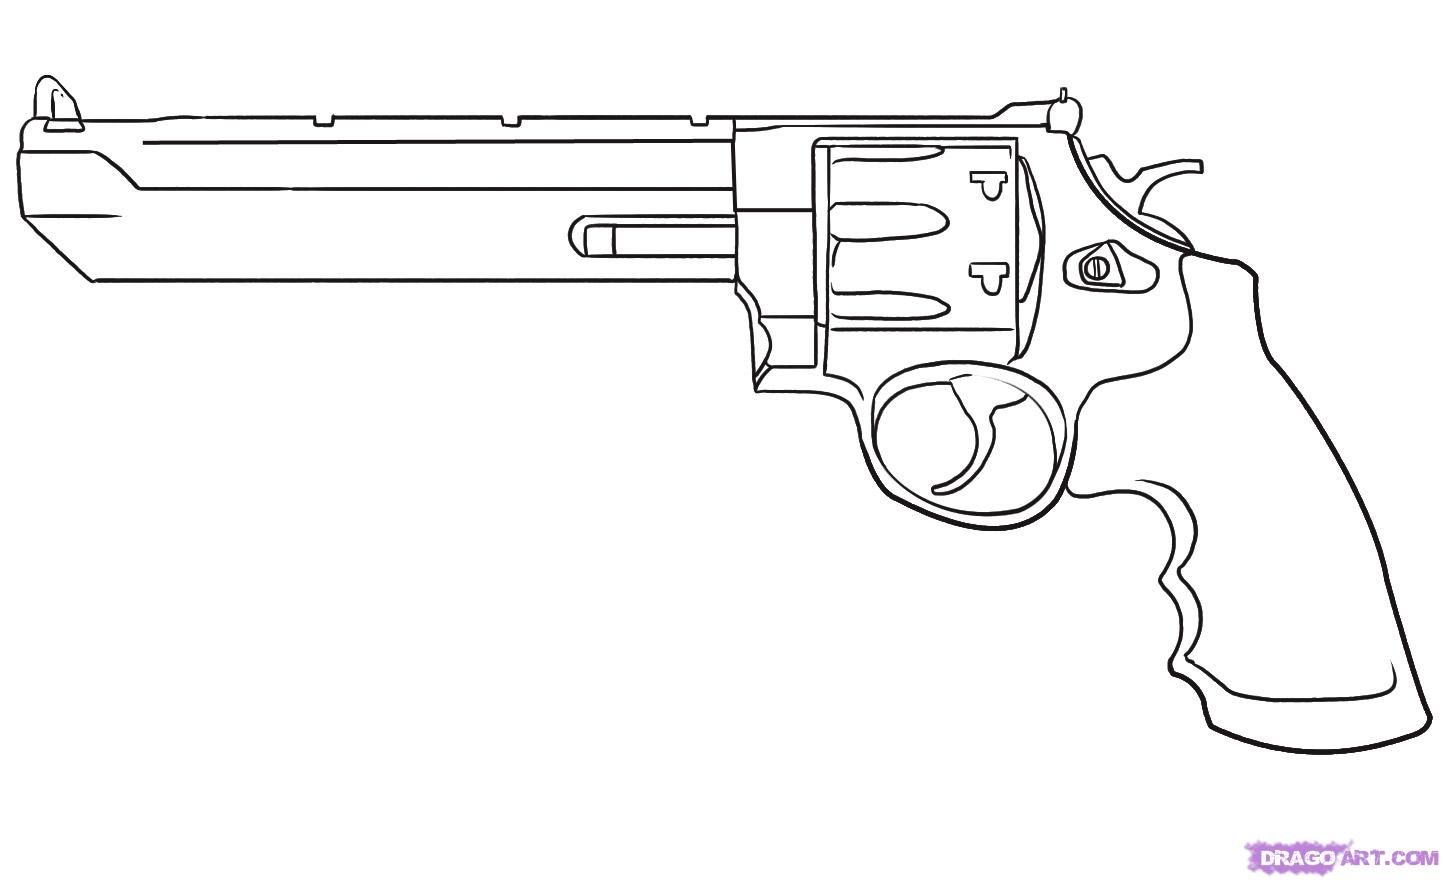 Drawing Of Colt Revolver Gun That I Could Use For